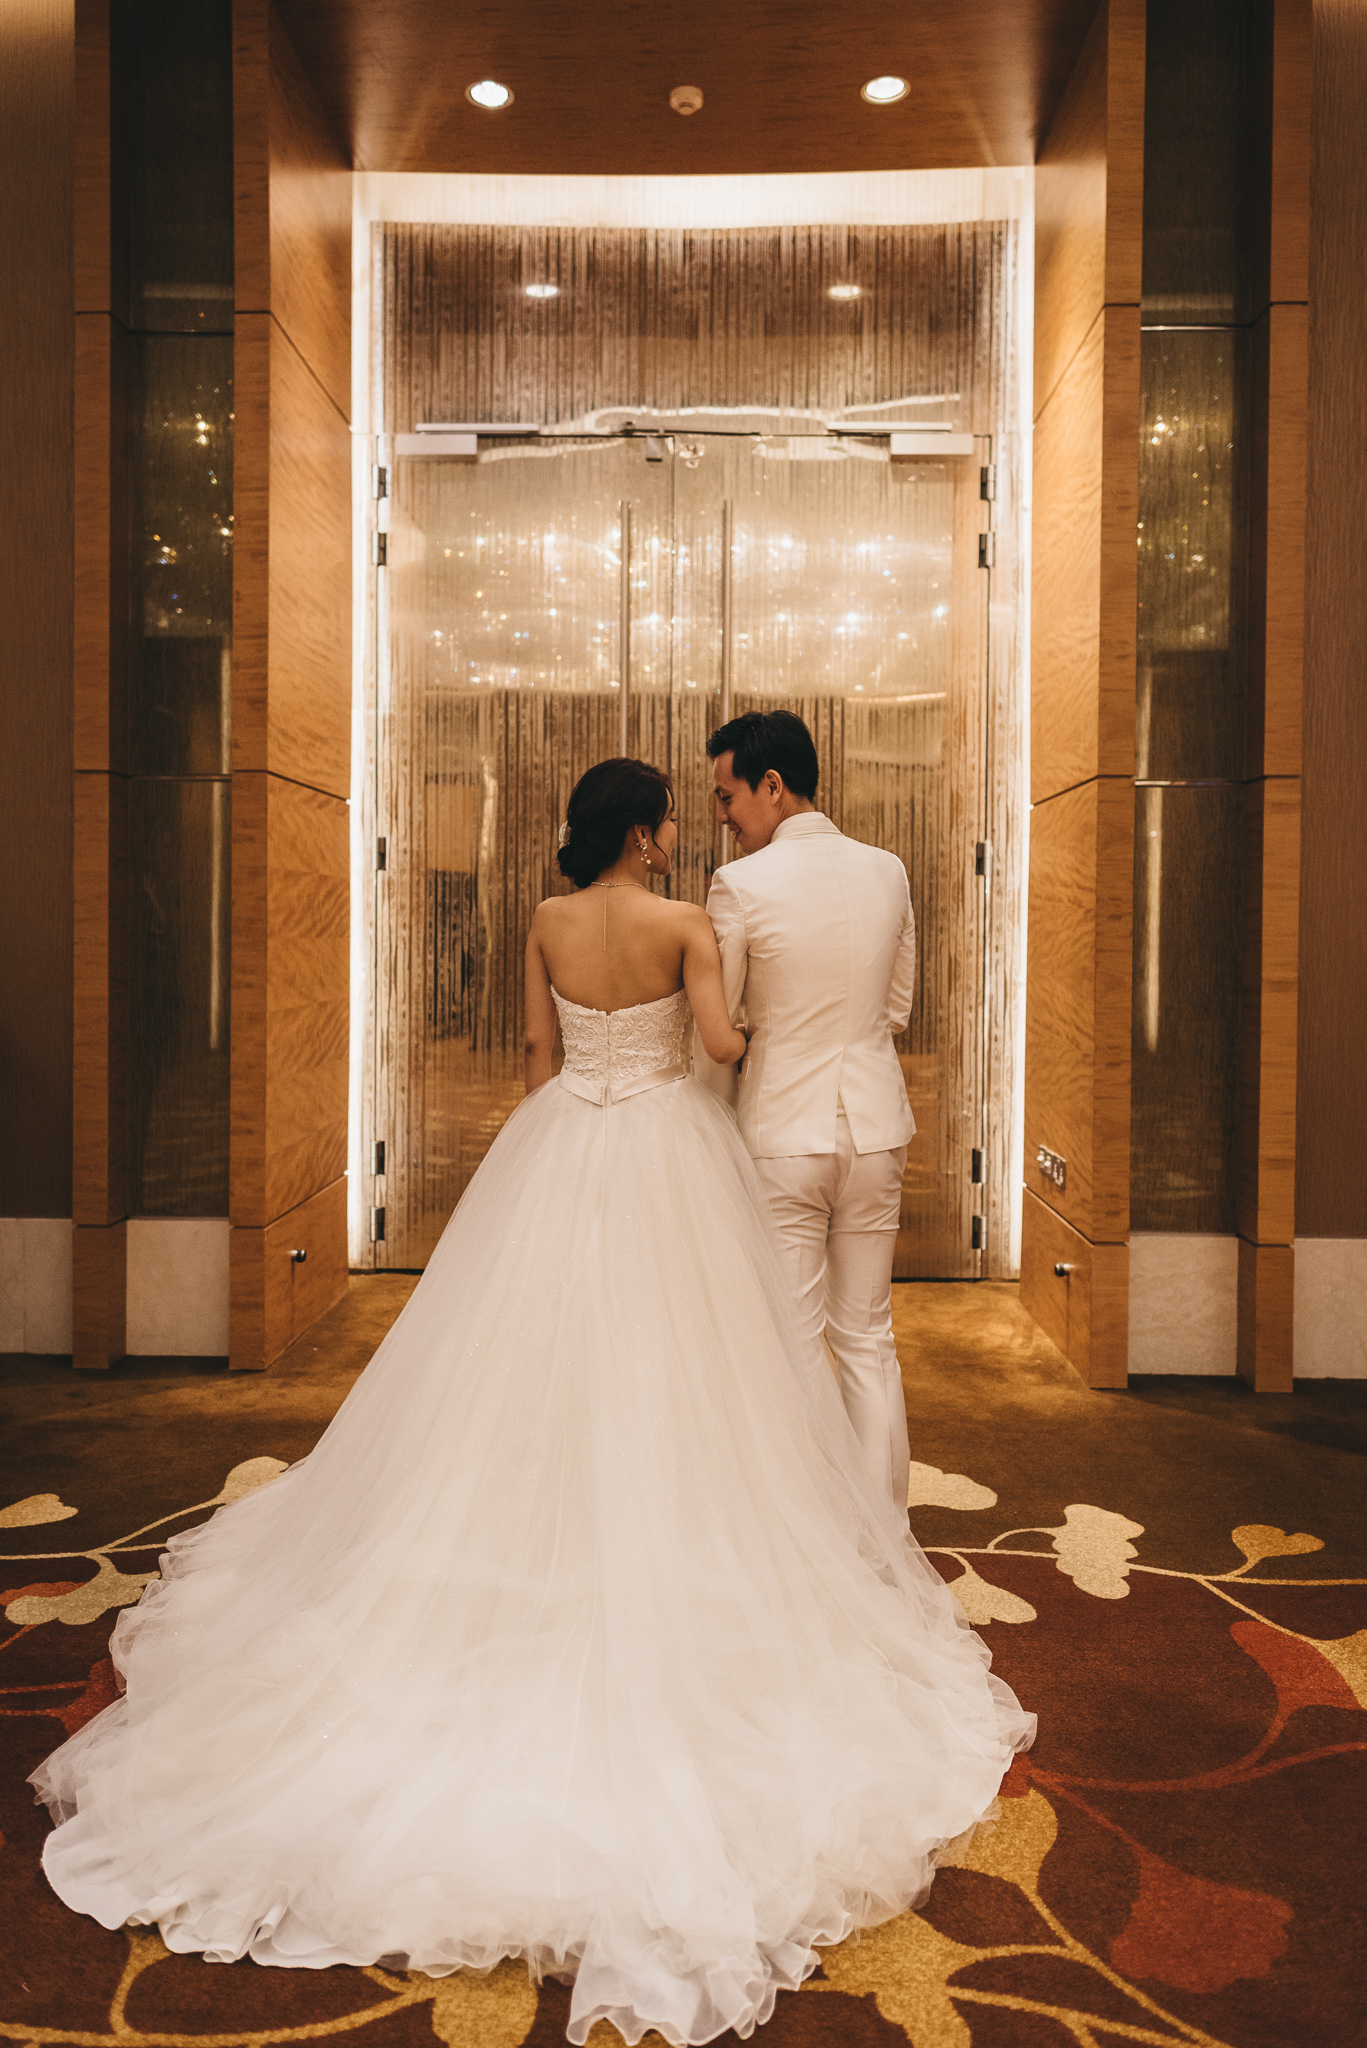 Fiona & Terence Wedding Day Highlights (resized for sharing) - 205.jpg